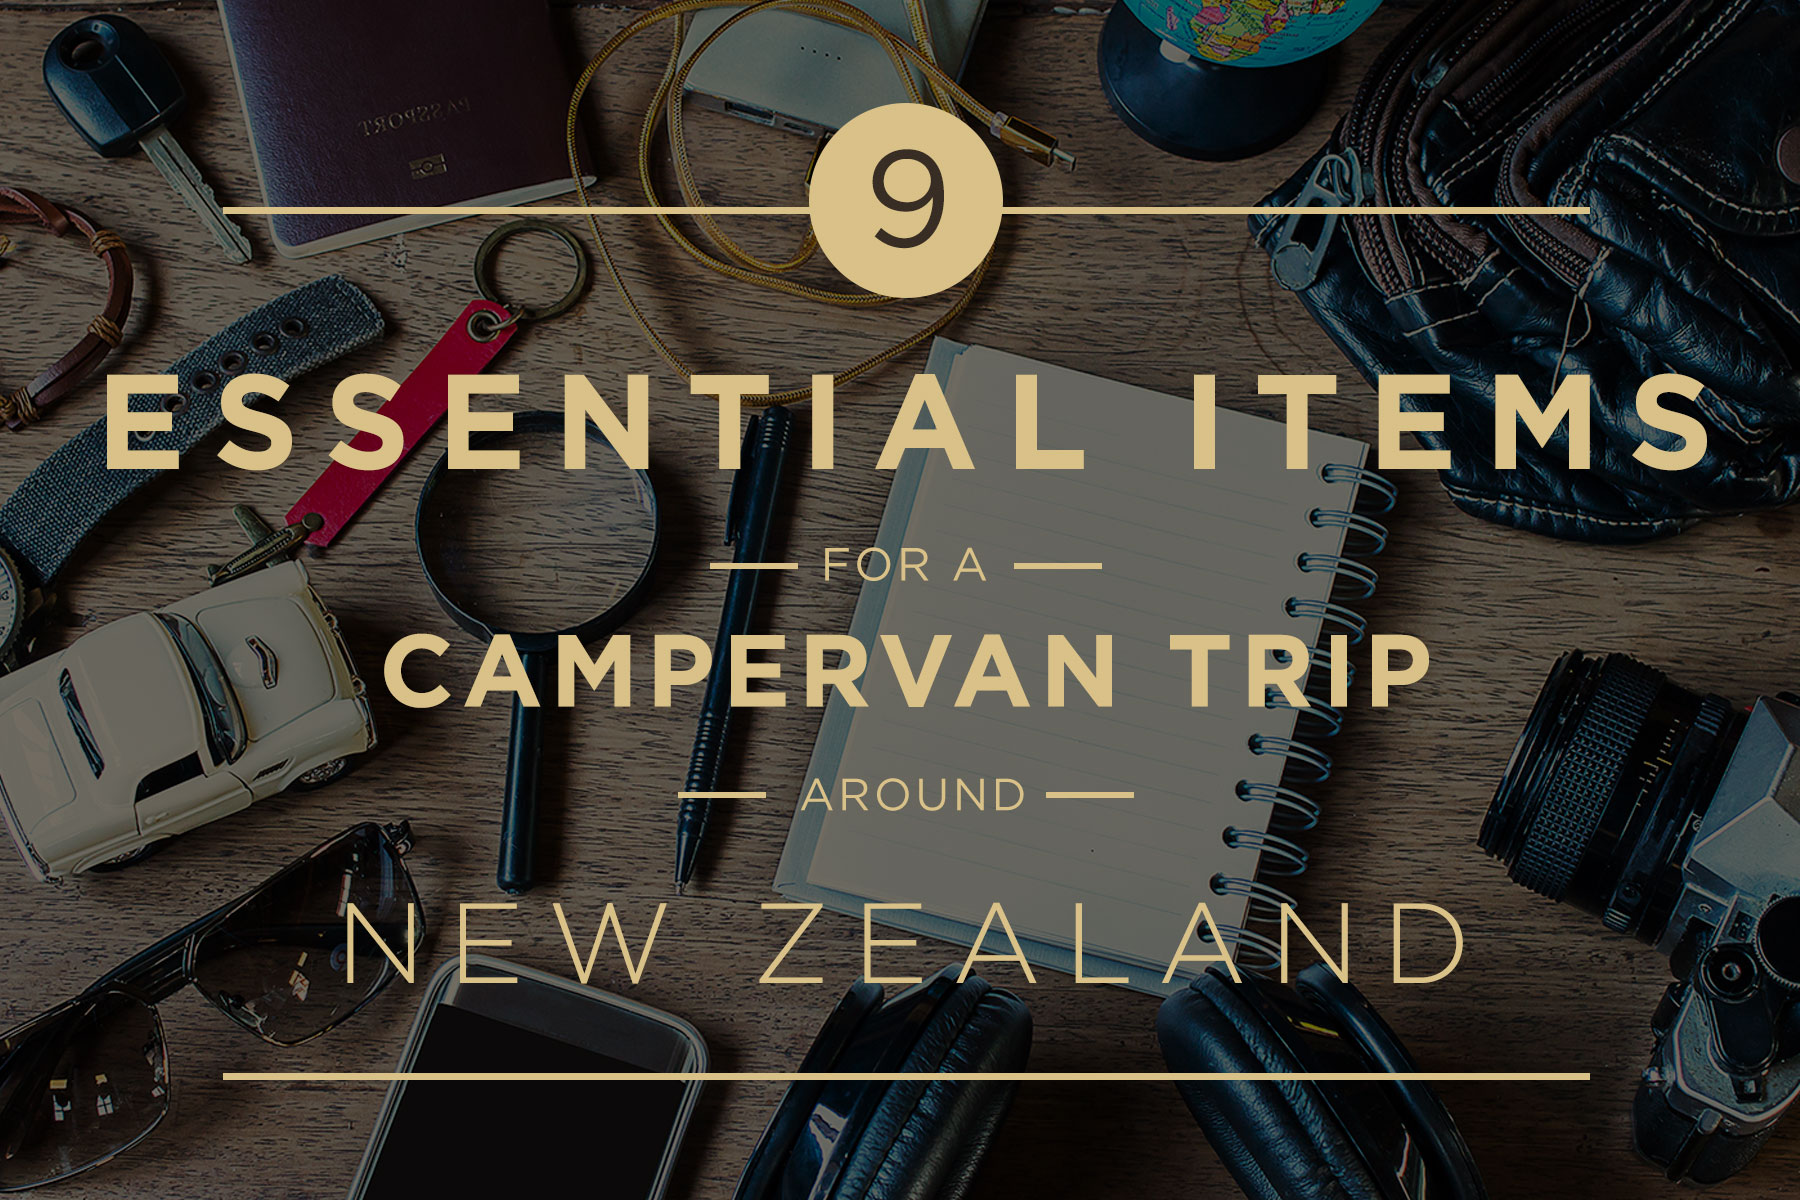 9-essential-items-campervan-trip-new-zealand-freelancehoneymoon